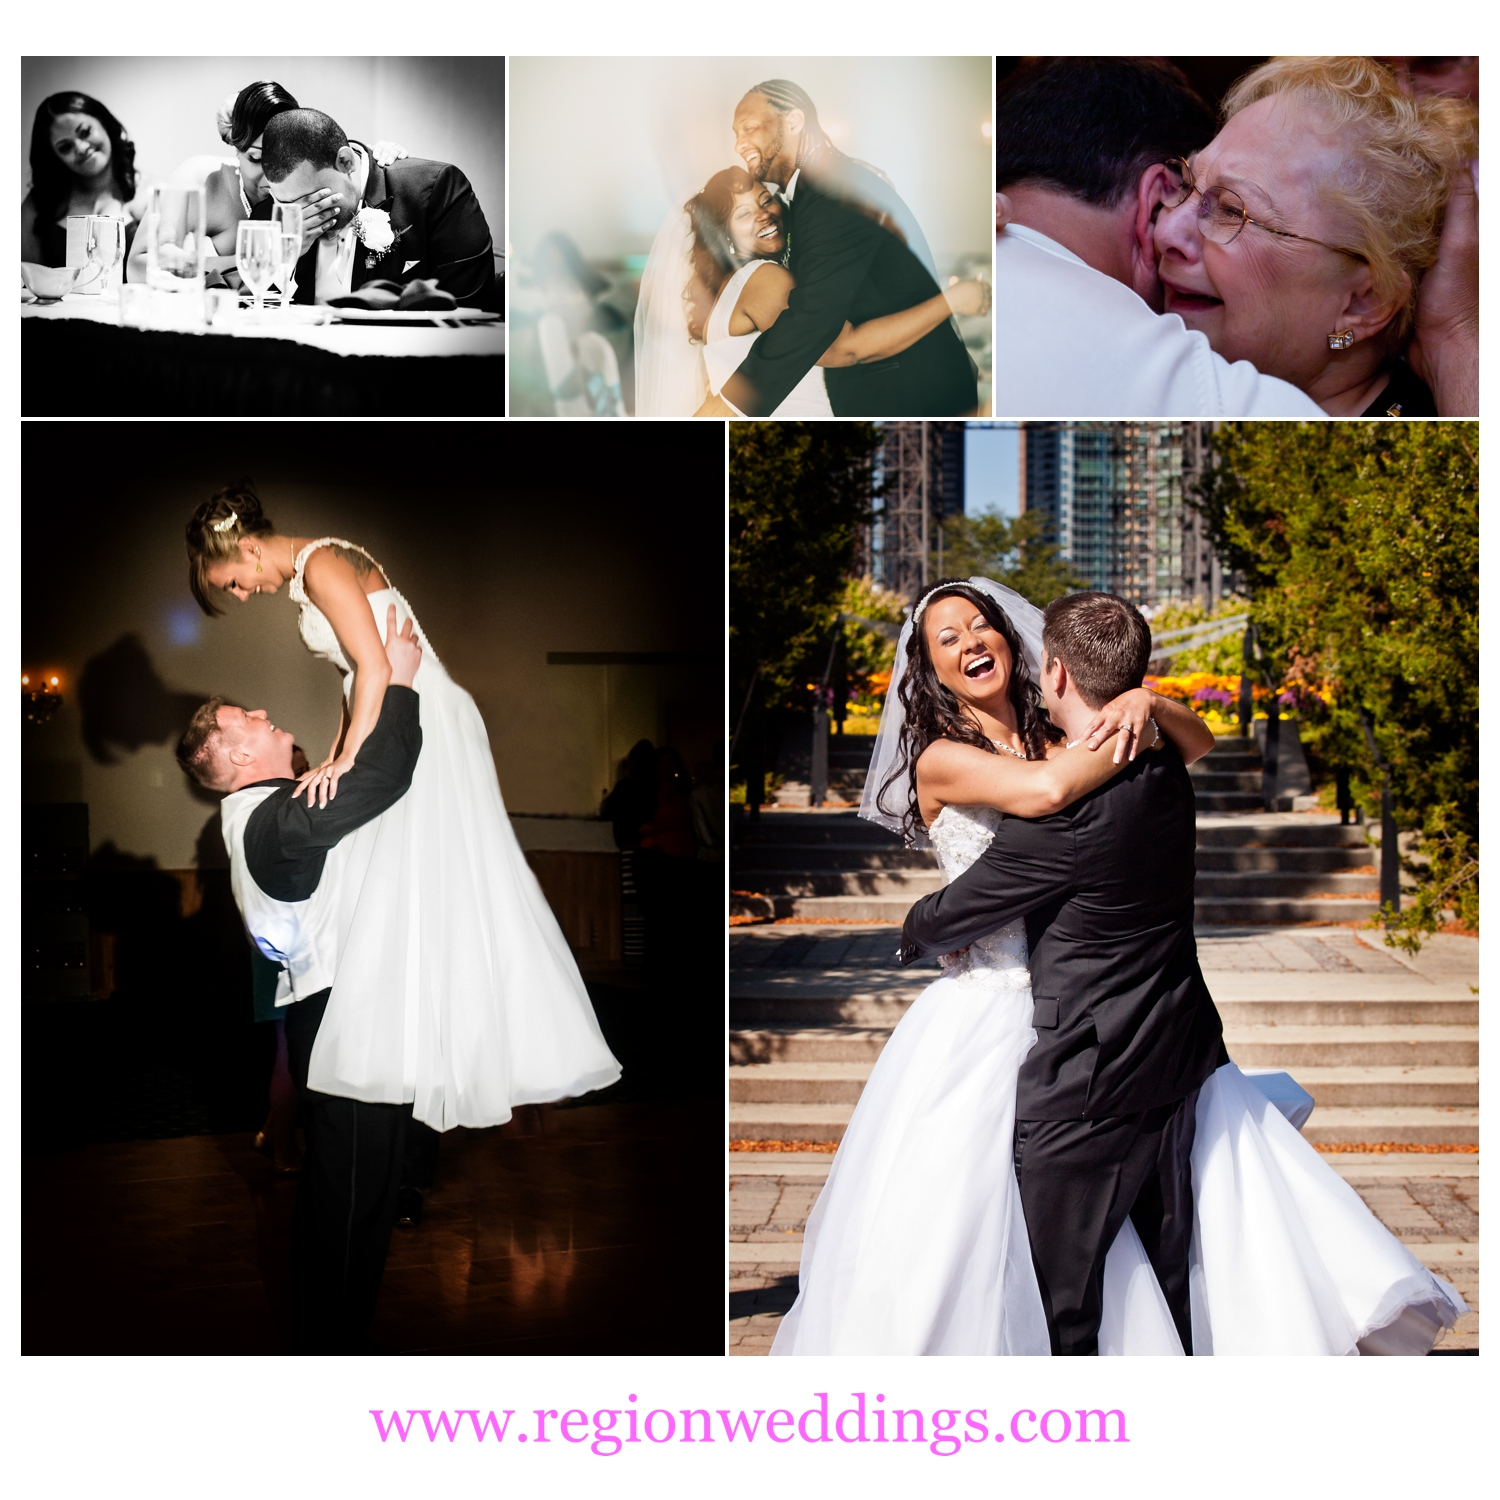 Emotional moments on wedding day.